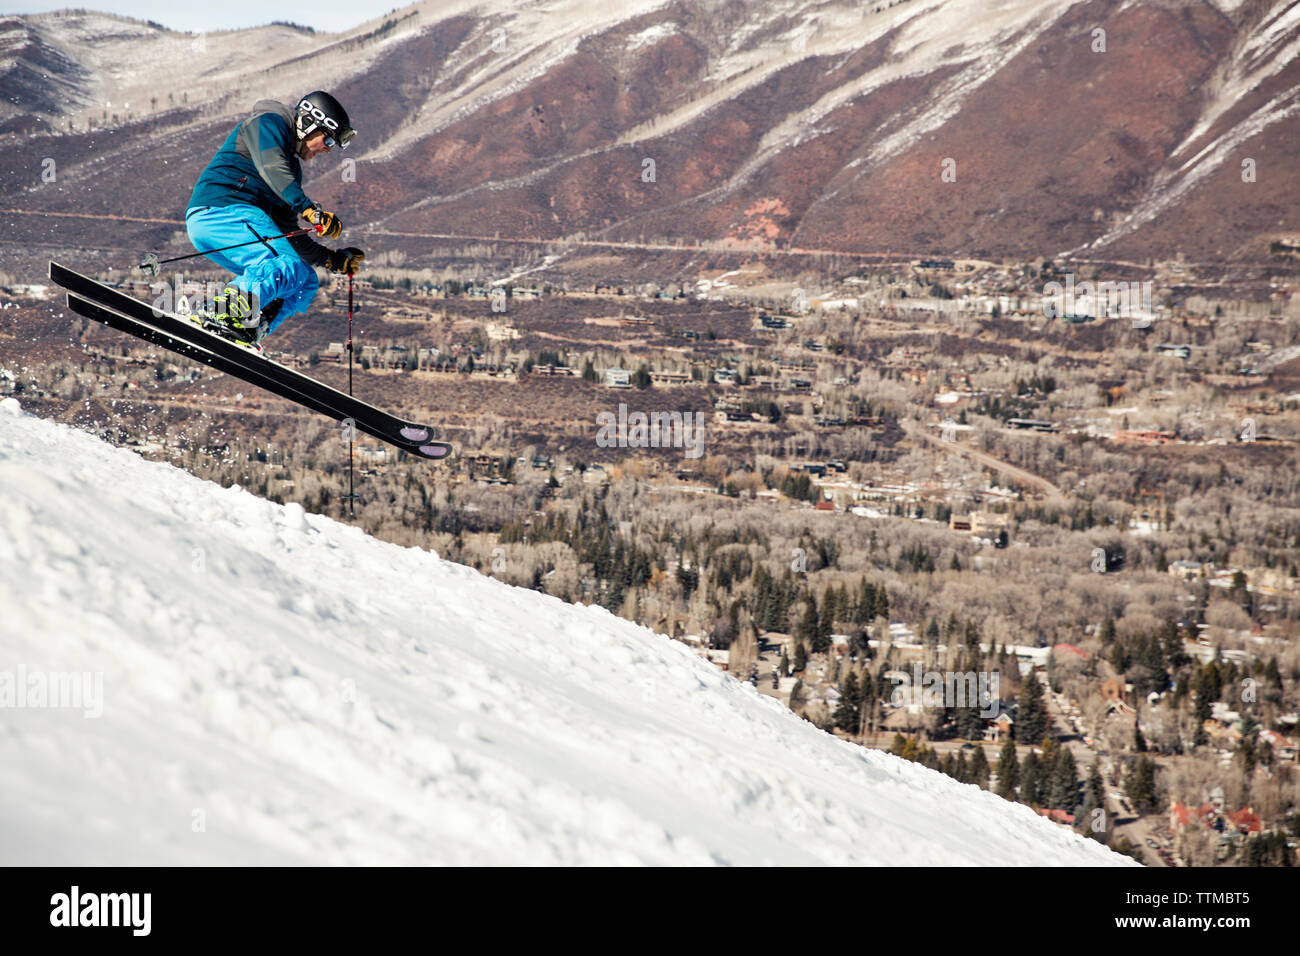 USA, Colorado, Aspen, skiing a run called Norway with the town of Aspen in the distance, Aspen Ski Resort, Ajax mountain - Stock Image